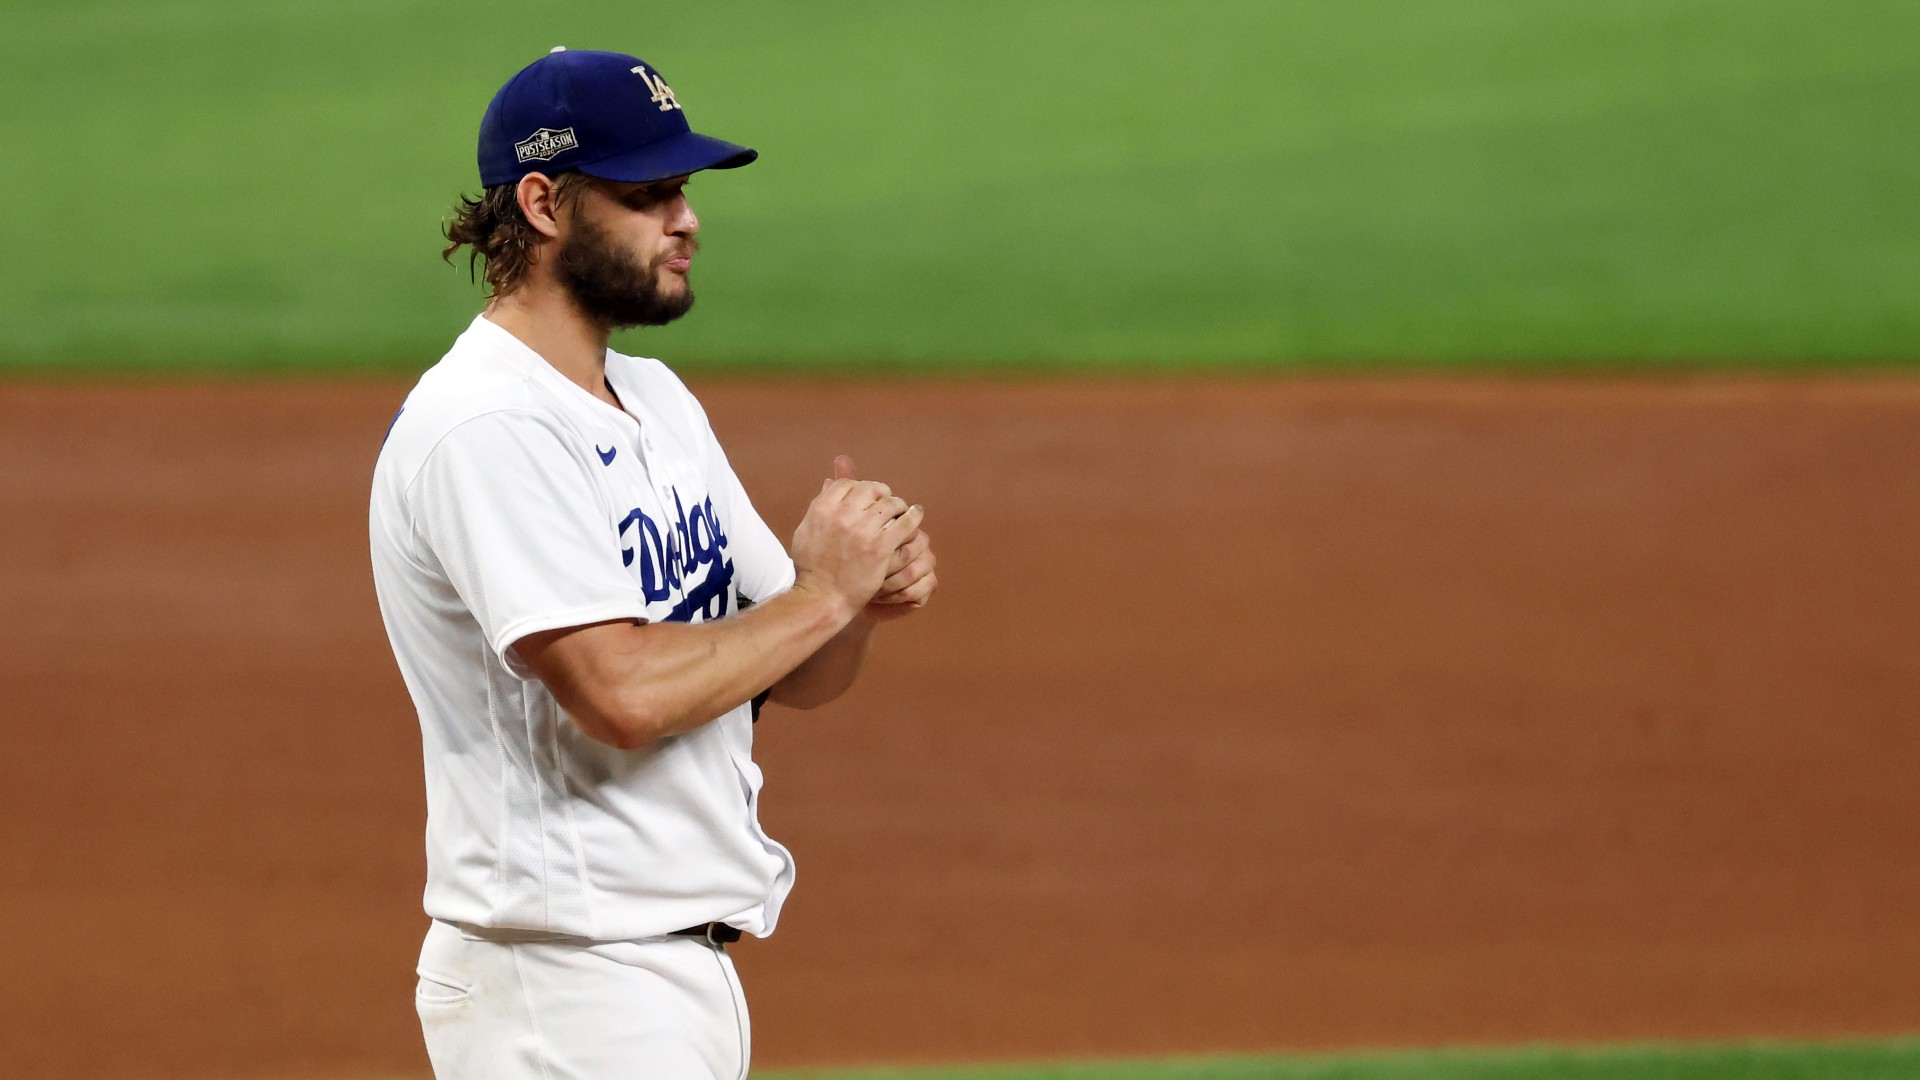 Clayton Kershaw of the Los Angeles Dodgers reacts during the fourth inning against the San Diego Padres in Game Two of the National League Division Series at Globe Life Field on October 07, 2020 in Arlington, Texas. (Tom Pennington/Getty Images)